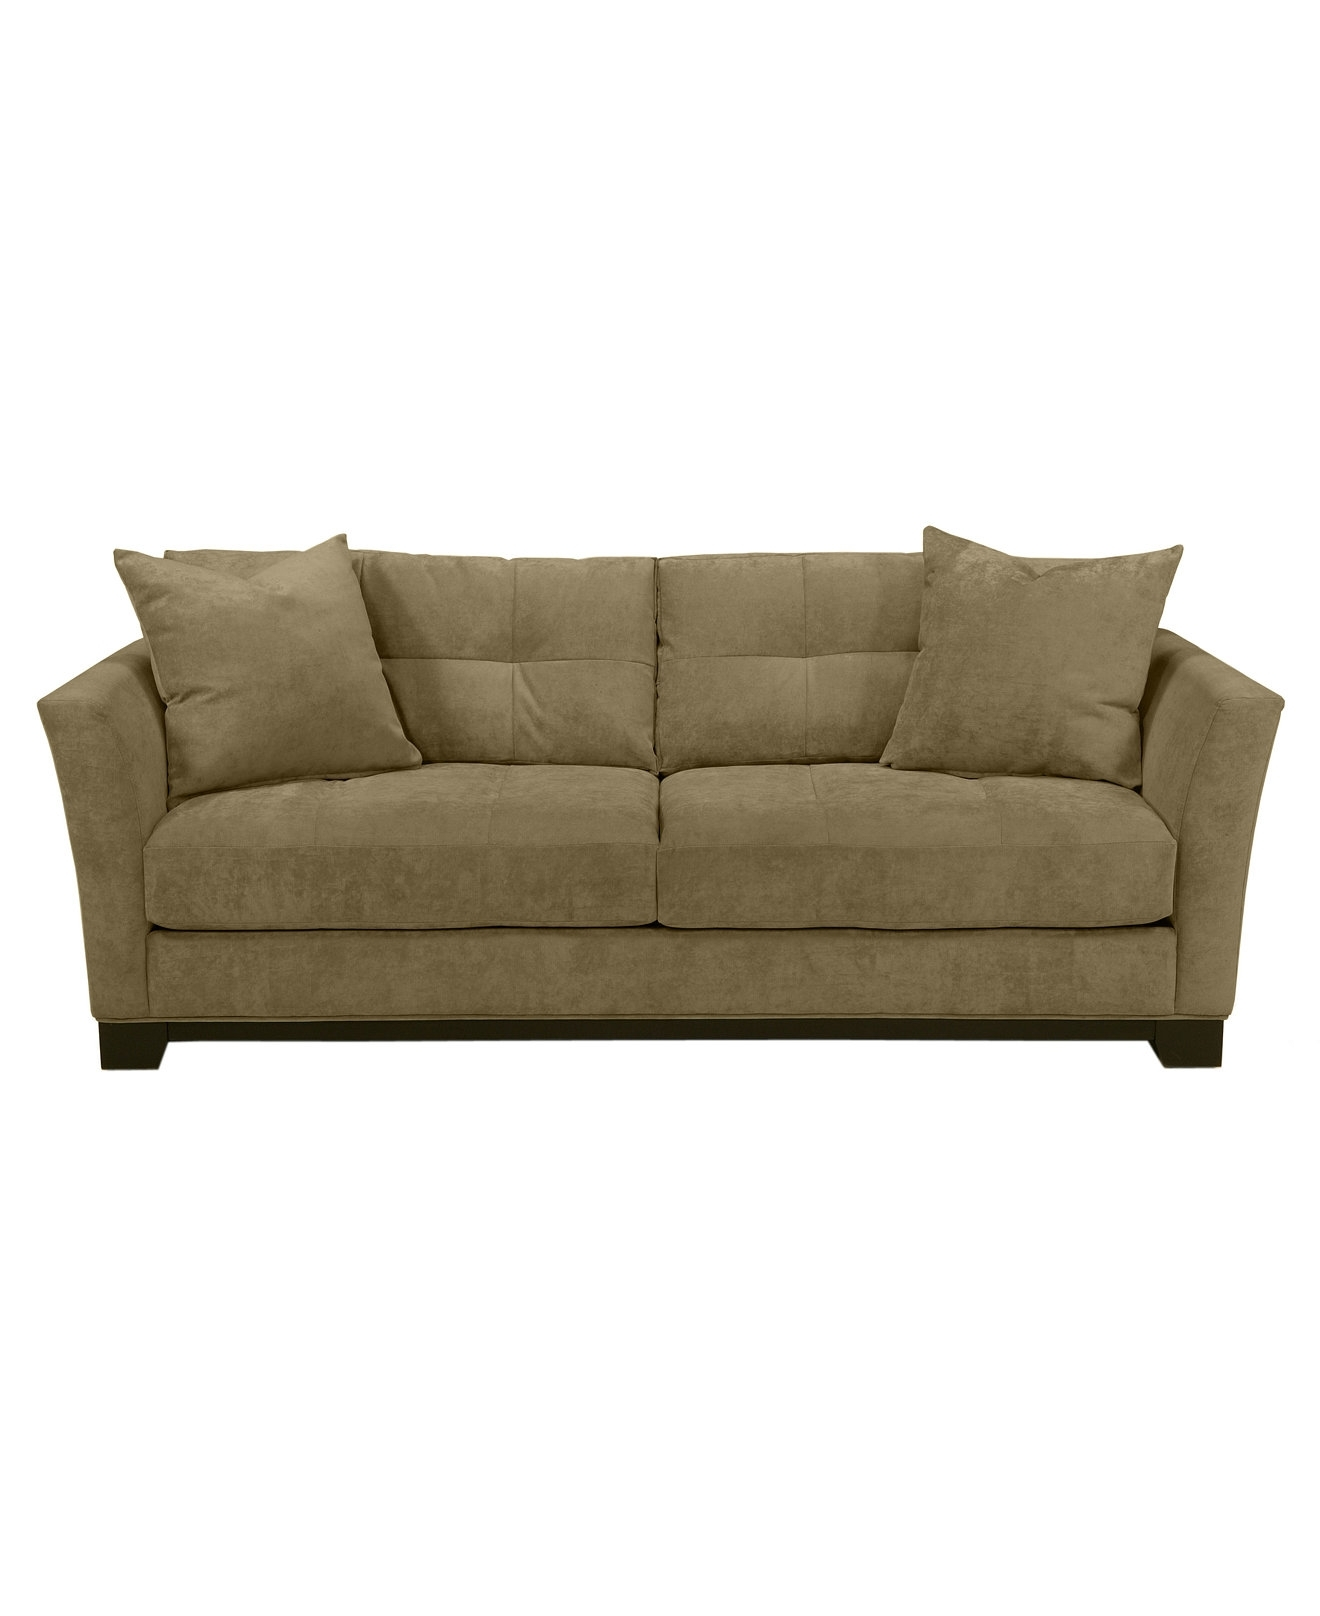 Recent Macys Sofas Within 90 Wide Elliot Fabric Microfiber Queen Sleeper Sofa Bed – Couches (View 8 of 15)